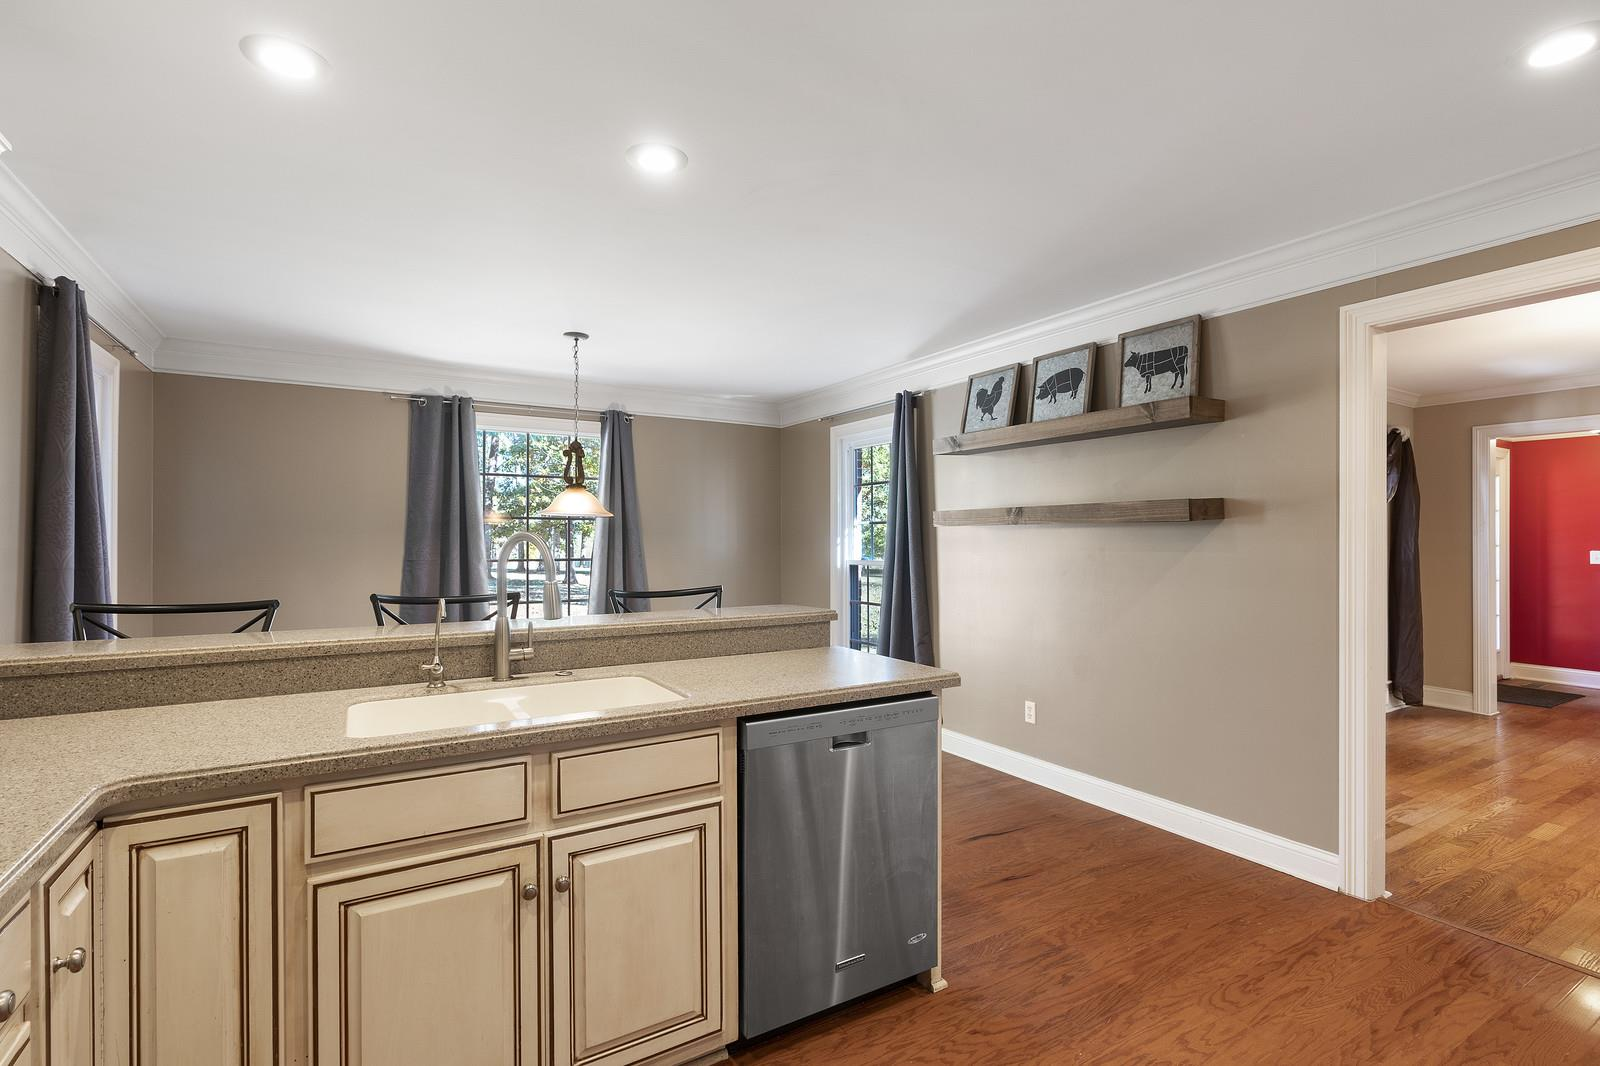 $376,000 - 3Br/3Ba -  for Sale in L&w Properties Llc Splits, Portland